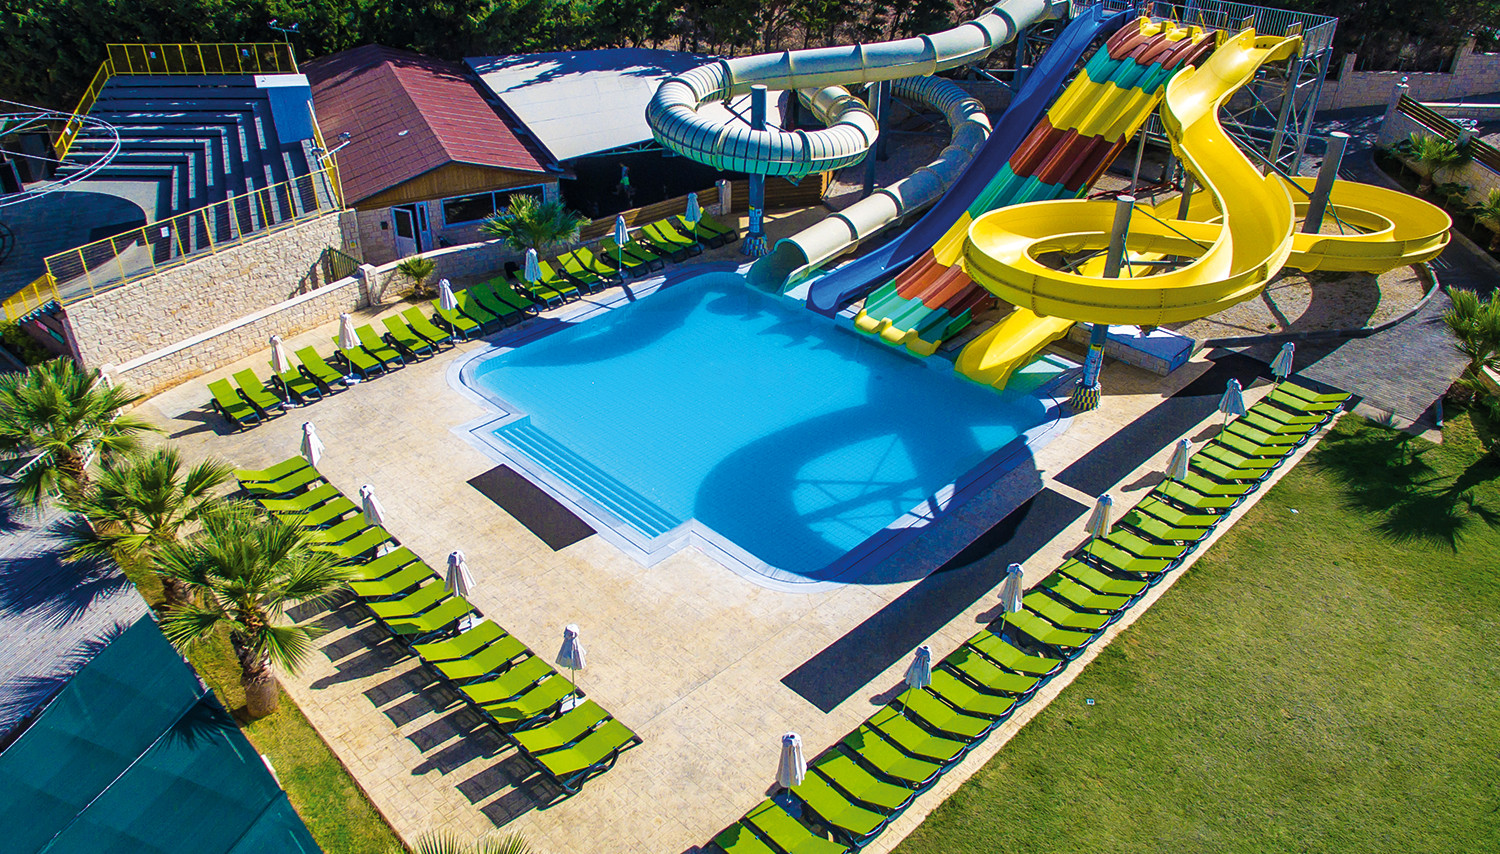 Gouves Water Park Holiday Resort (Krēta, Grieķija)